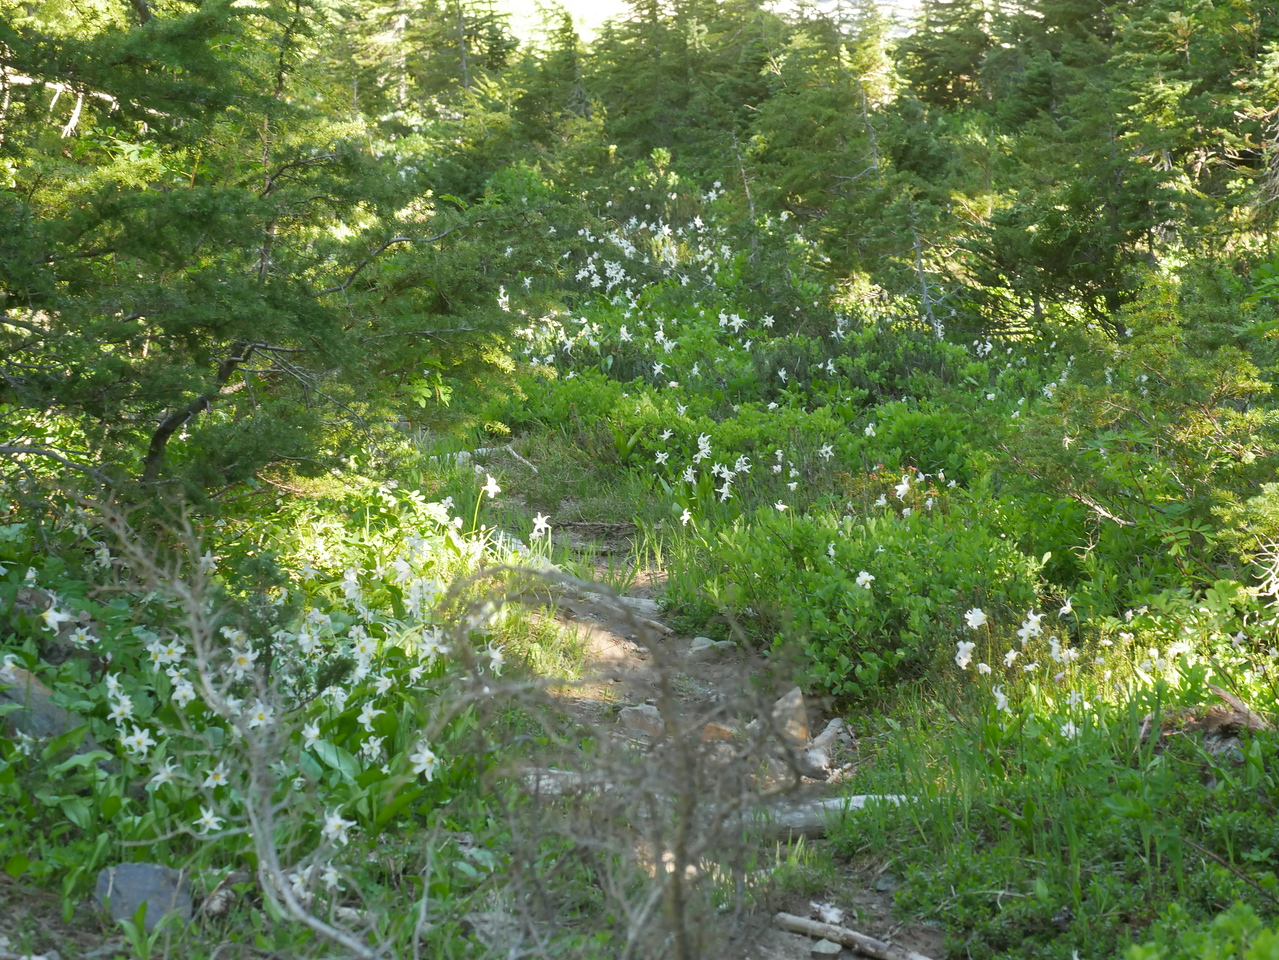 We had seen white avalanche lilies at the Paradise area the day before and we saw even more here.  Sometimes we see a new discovery and in the course of the day, we go from 0 to 60 plants.